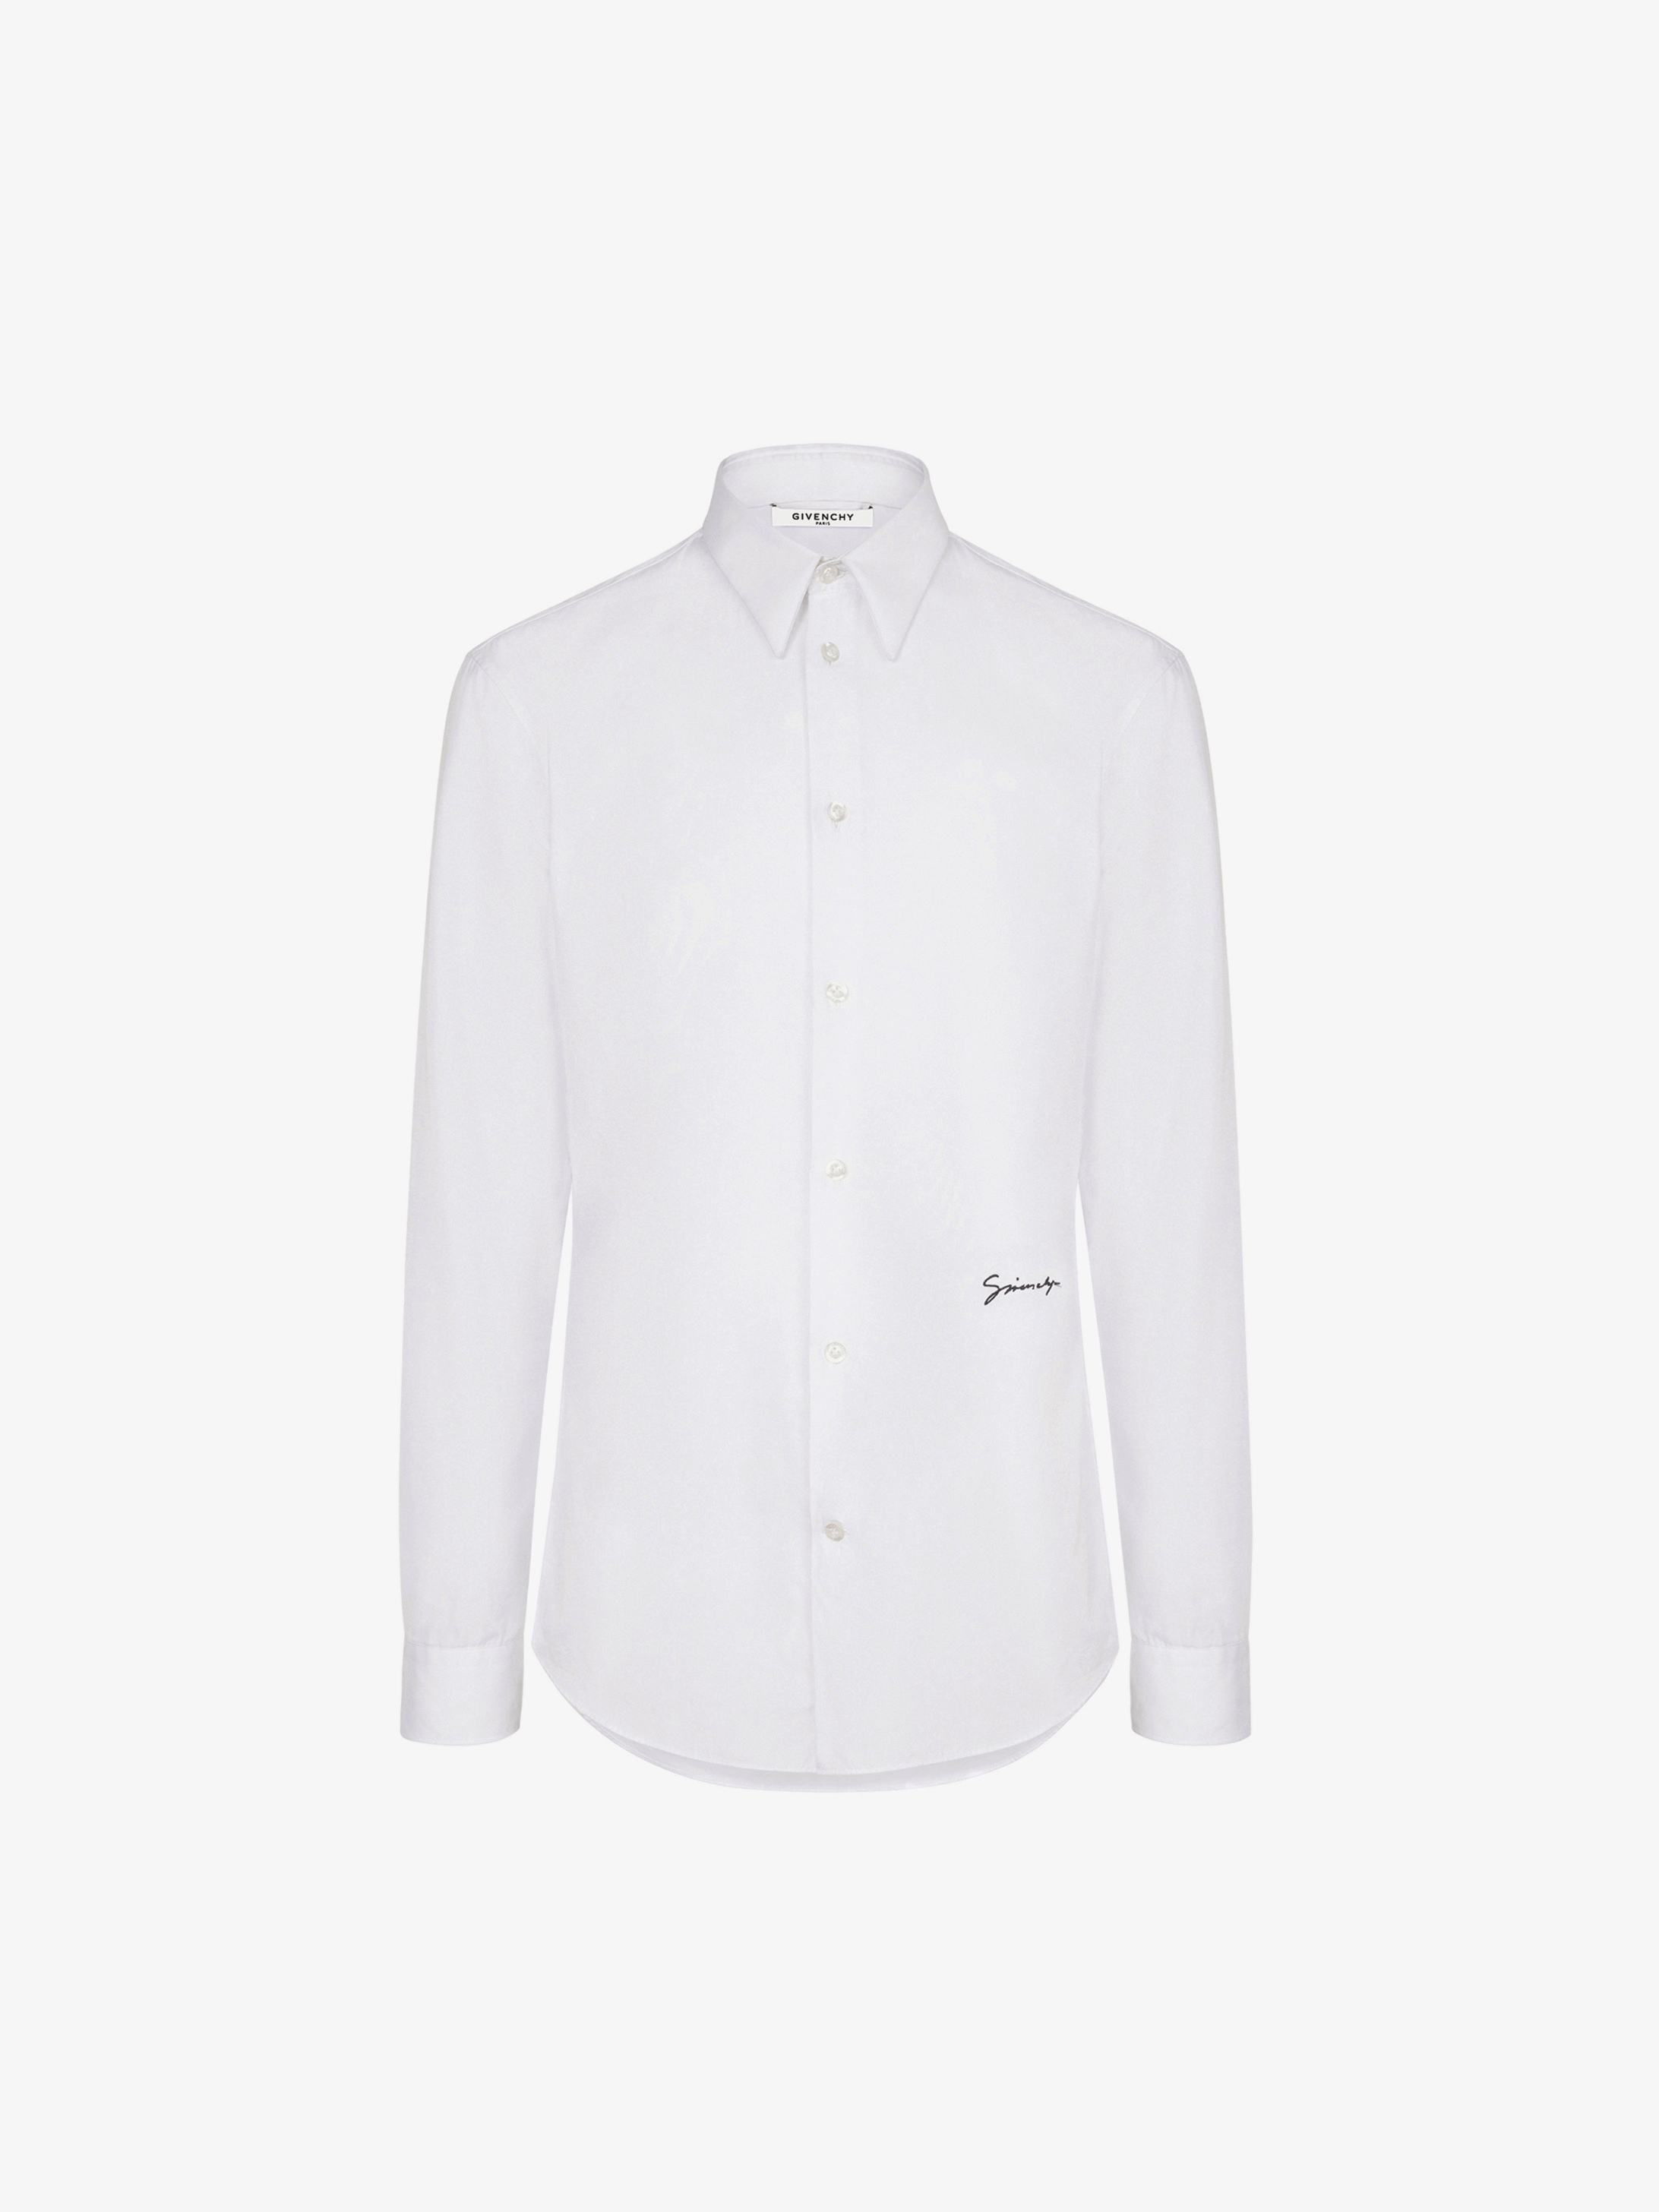 Givenchy embroidered shirt in cotton